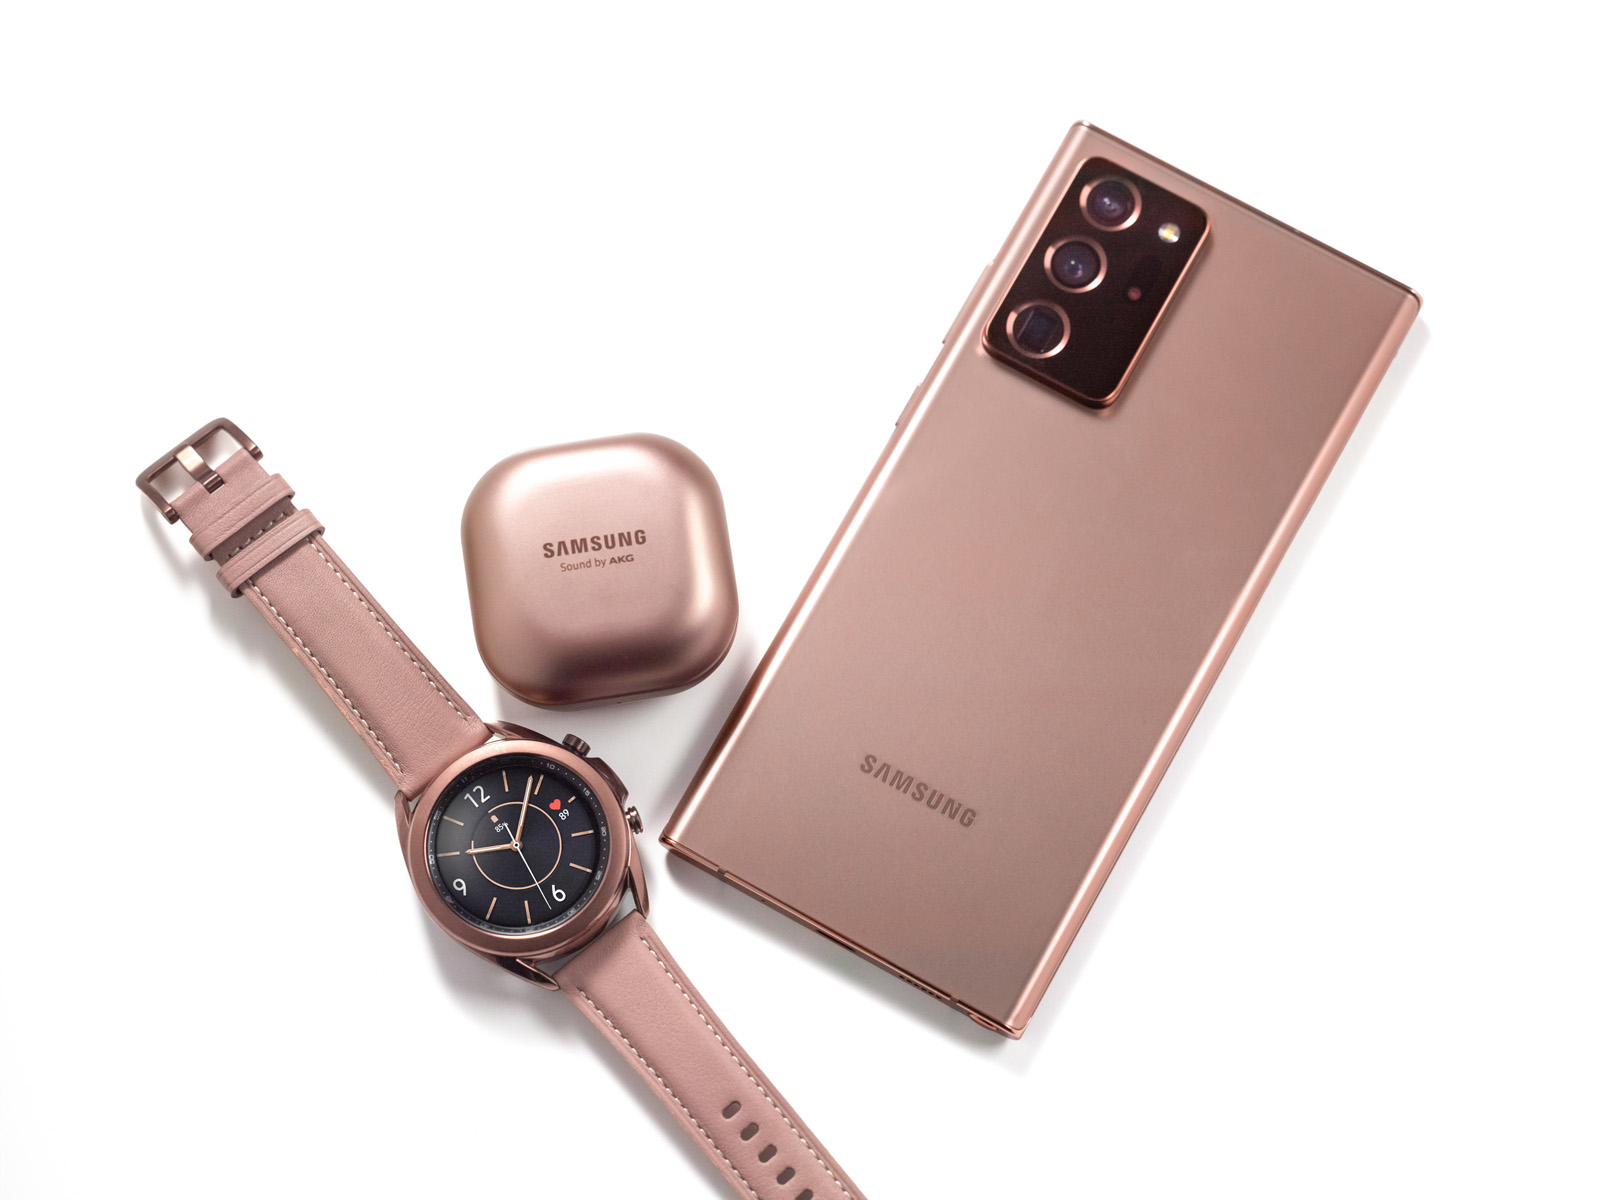 Galaxy Note20 Ultra, Galaxy Buds Live, Galaxy Watch3